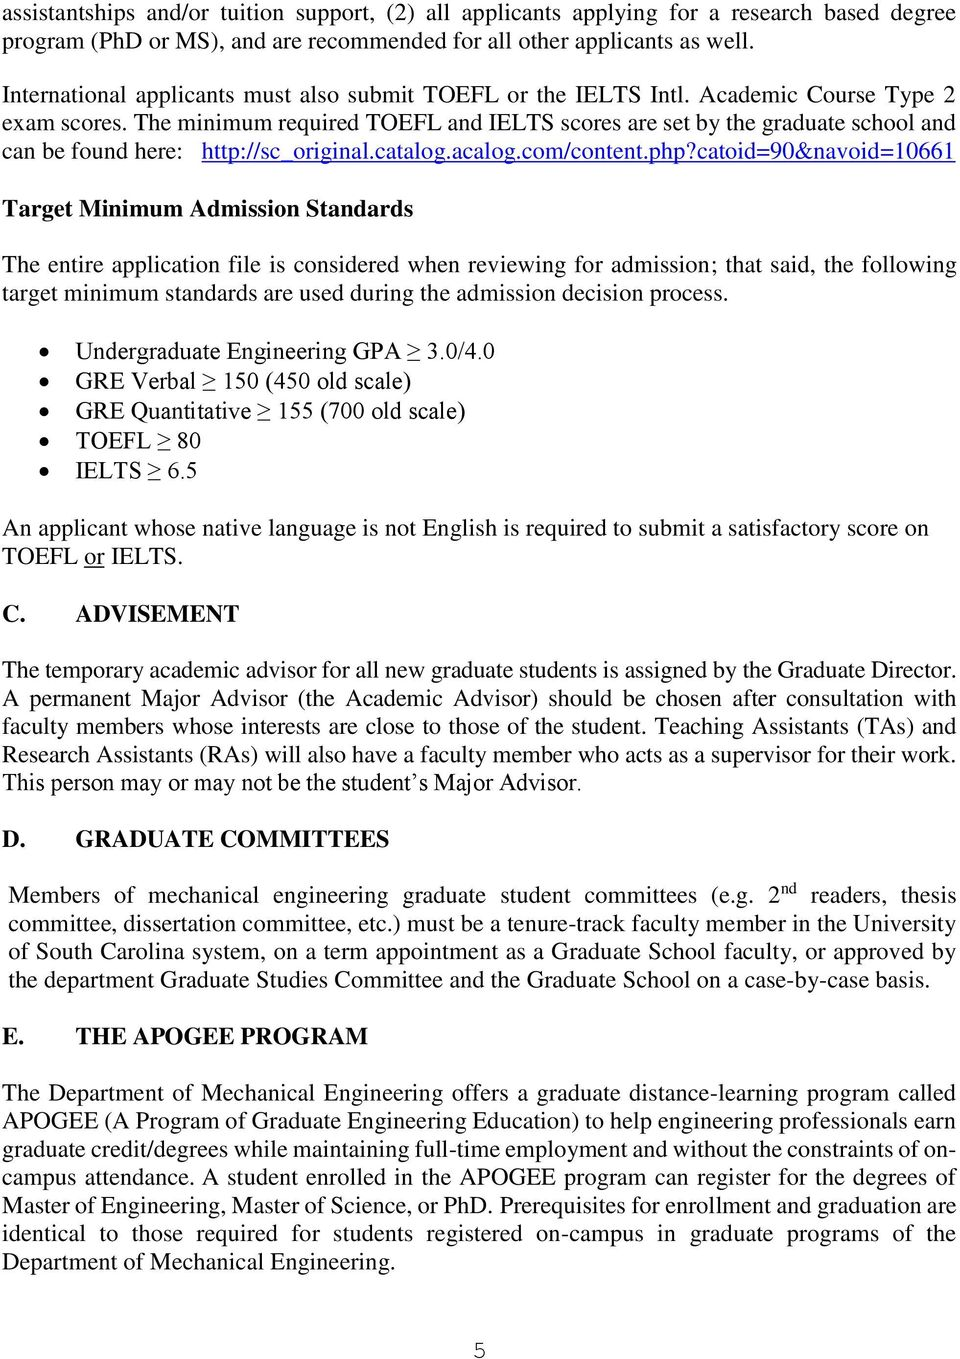 The minimum required TOEFL and IELTS scores are set by the graduate school and can be found here: http://sc_original.catalog.acalog.com/content.php?